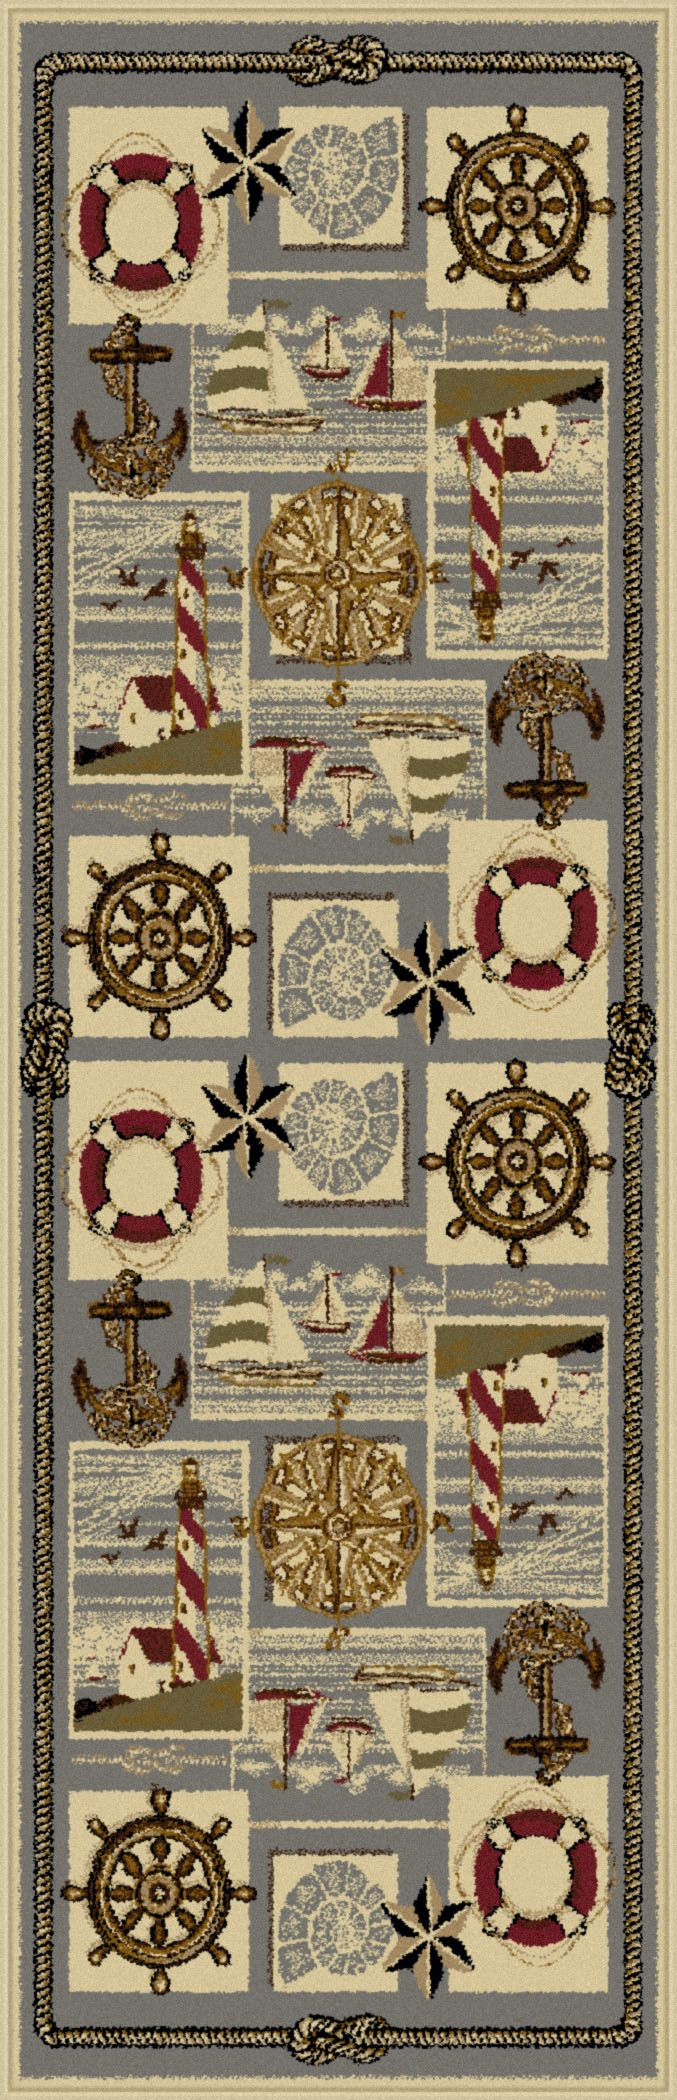 Tayse Rugs Nature Nautical Bliss Novelty Runner - 2'7'' x 7'3'', Beige & Tan